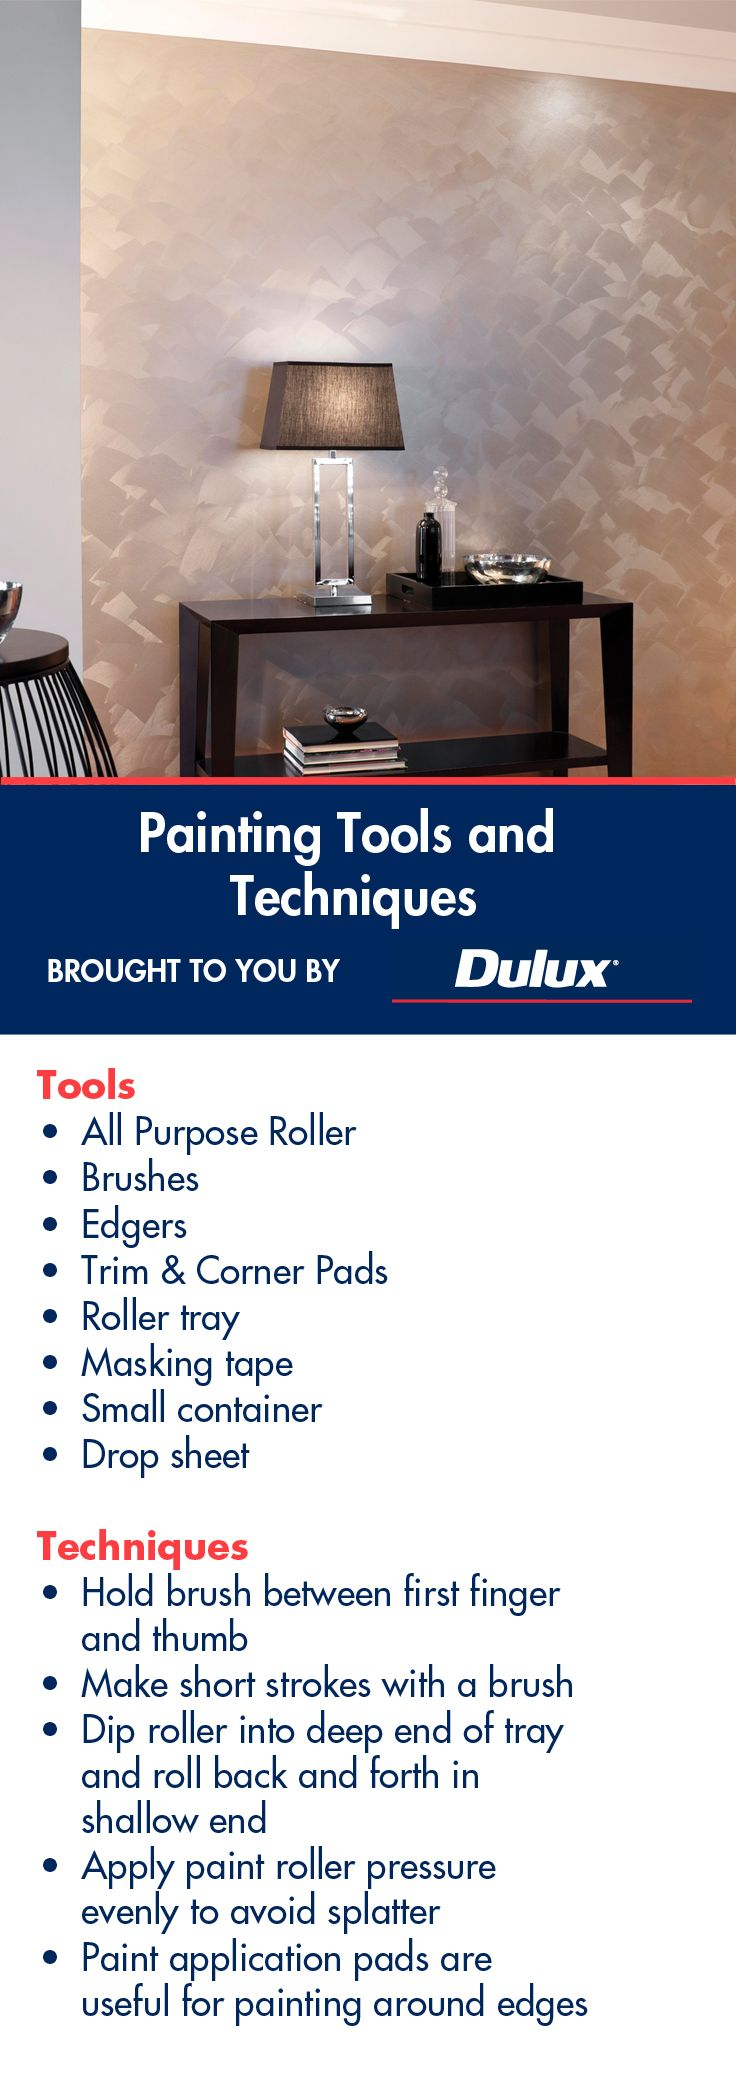 When painting, you'll get better results with the right gear and the right approach: #Easter